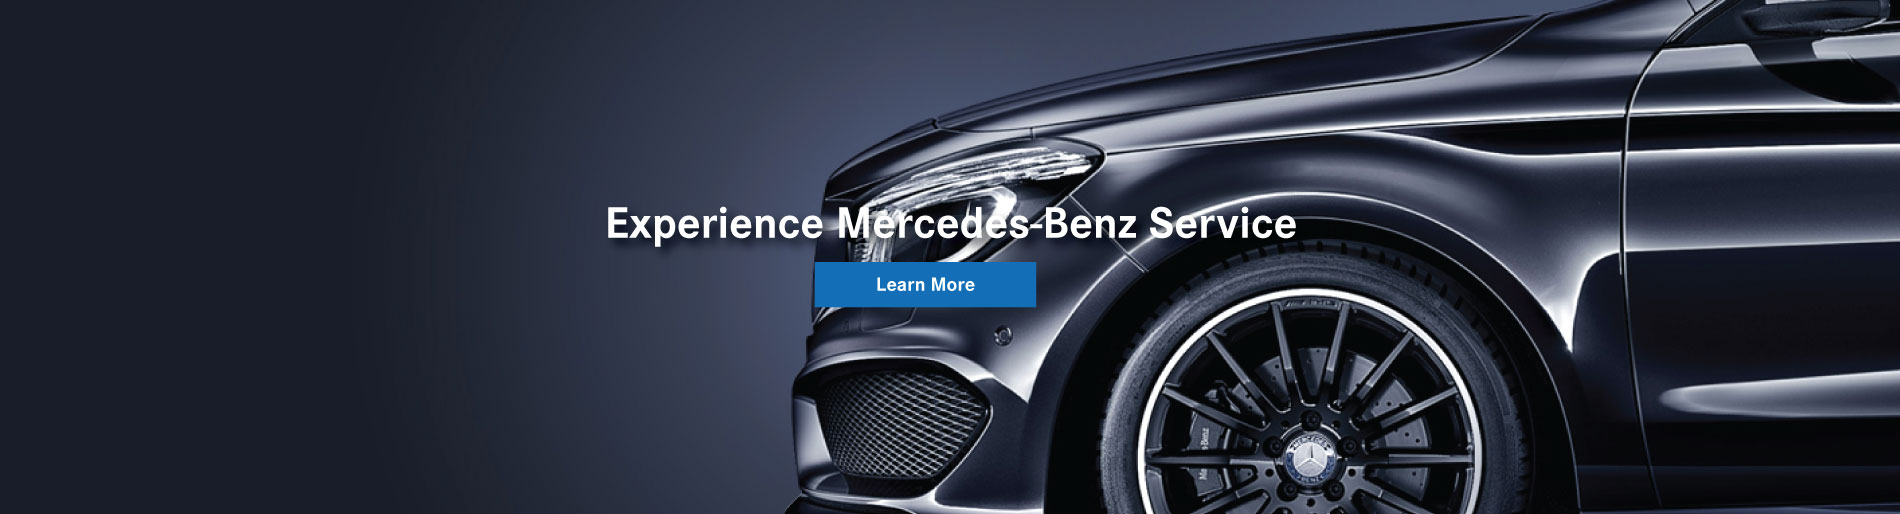 Euro motorcars bethesda new mercedes benz smart for Mercedes benz arlington service center